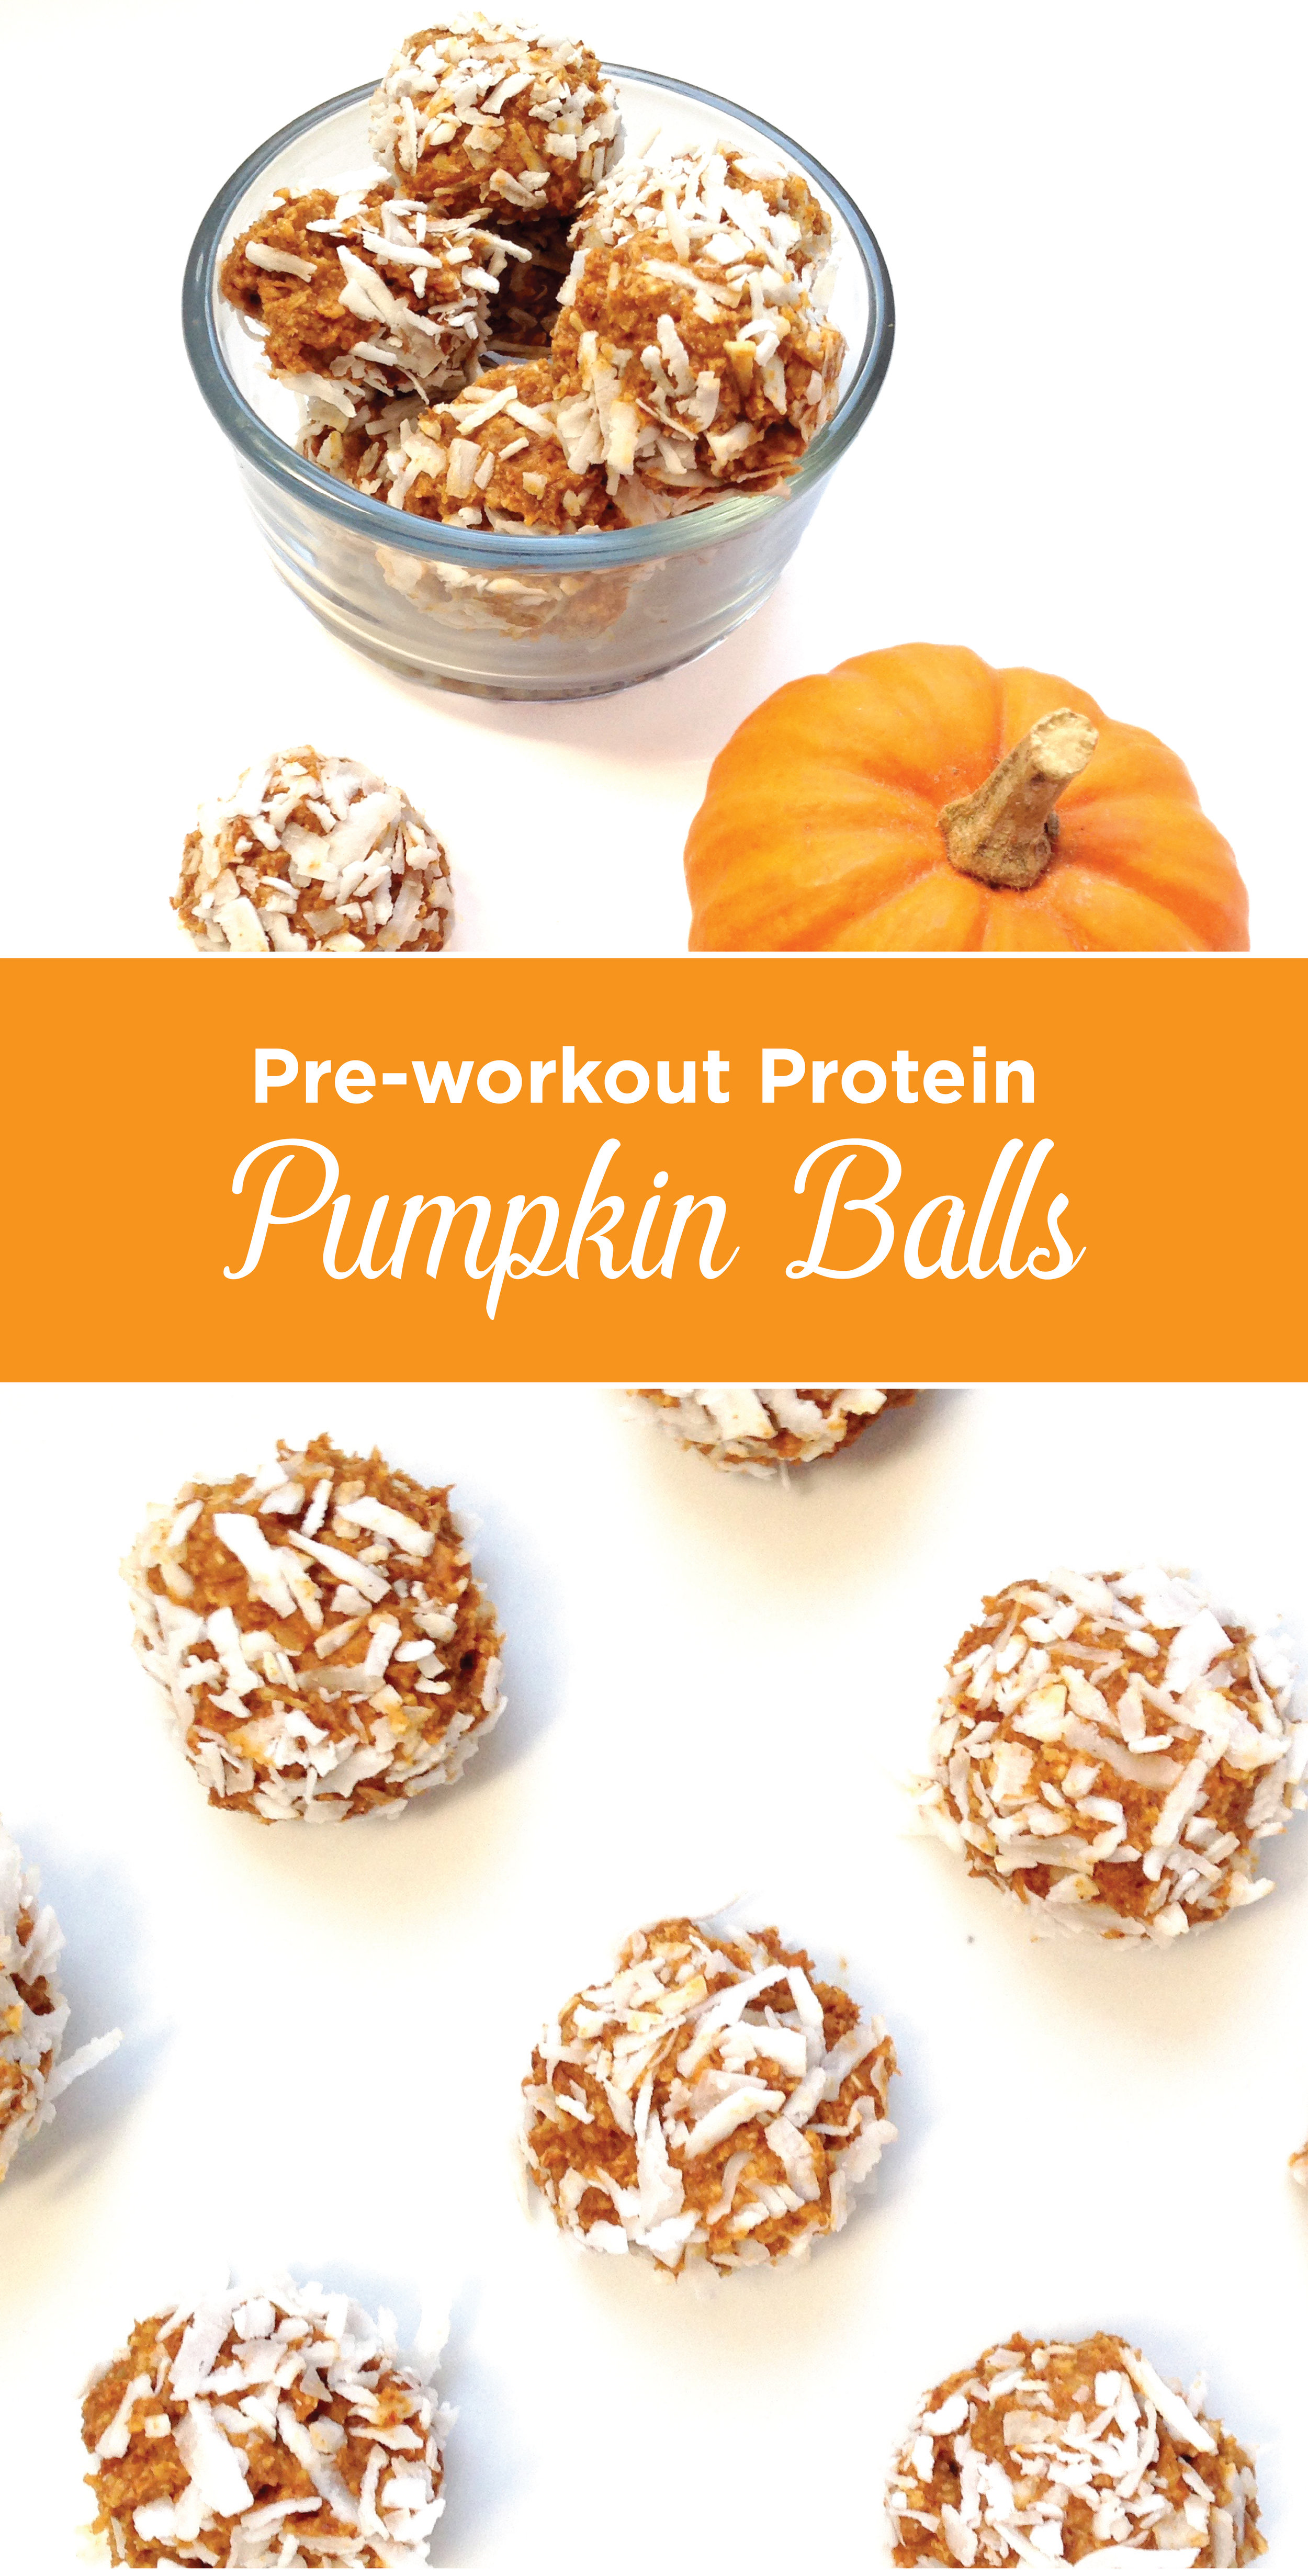 Protein Pumpkin Energy Balls. Satisfying and delicious! Stay fit and skinny and have a treat too!